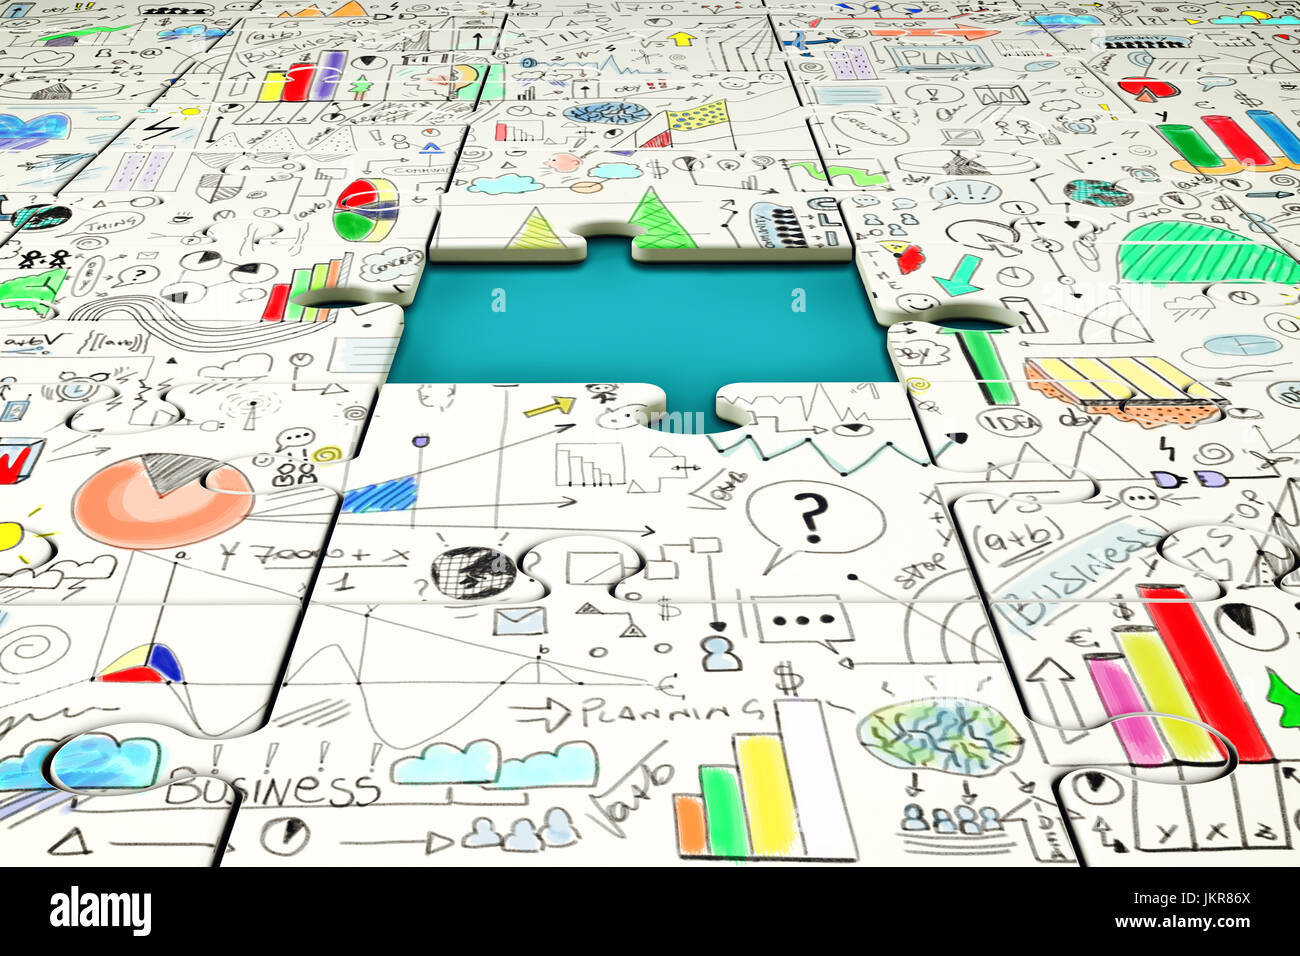 Missing piece of a puzzle with statistics drawn above - Stock Image